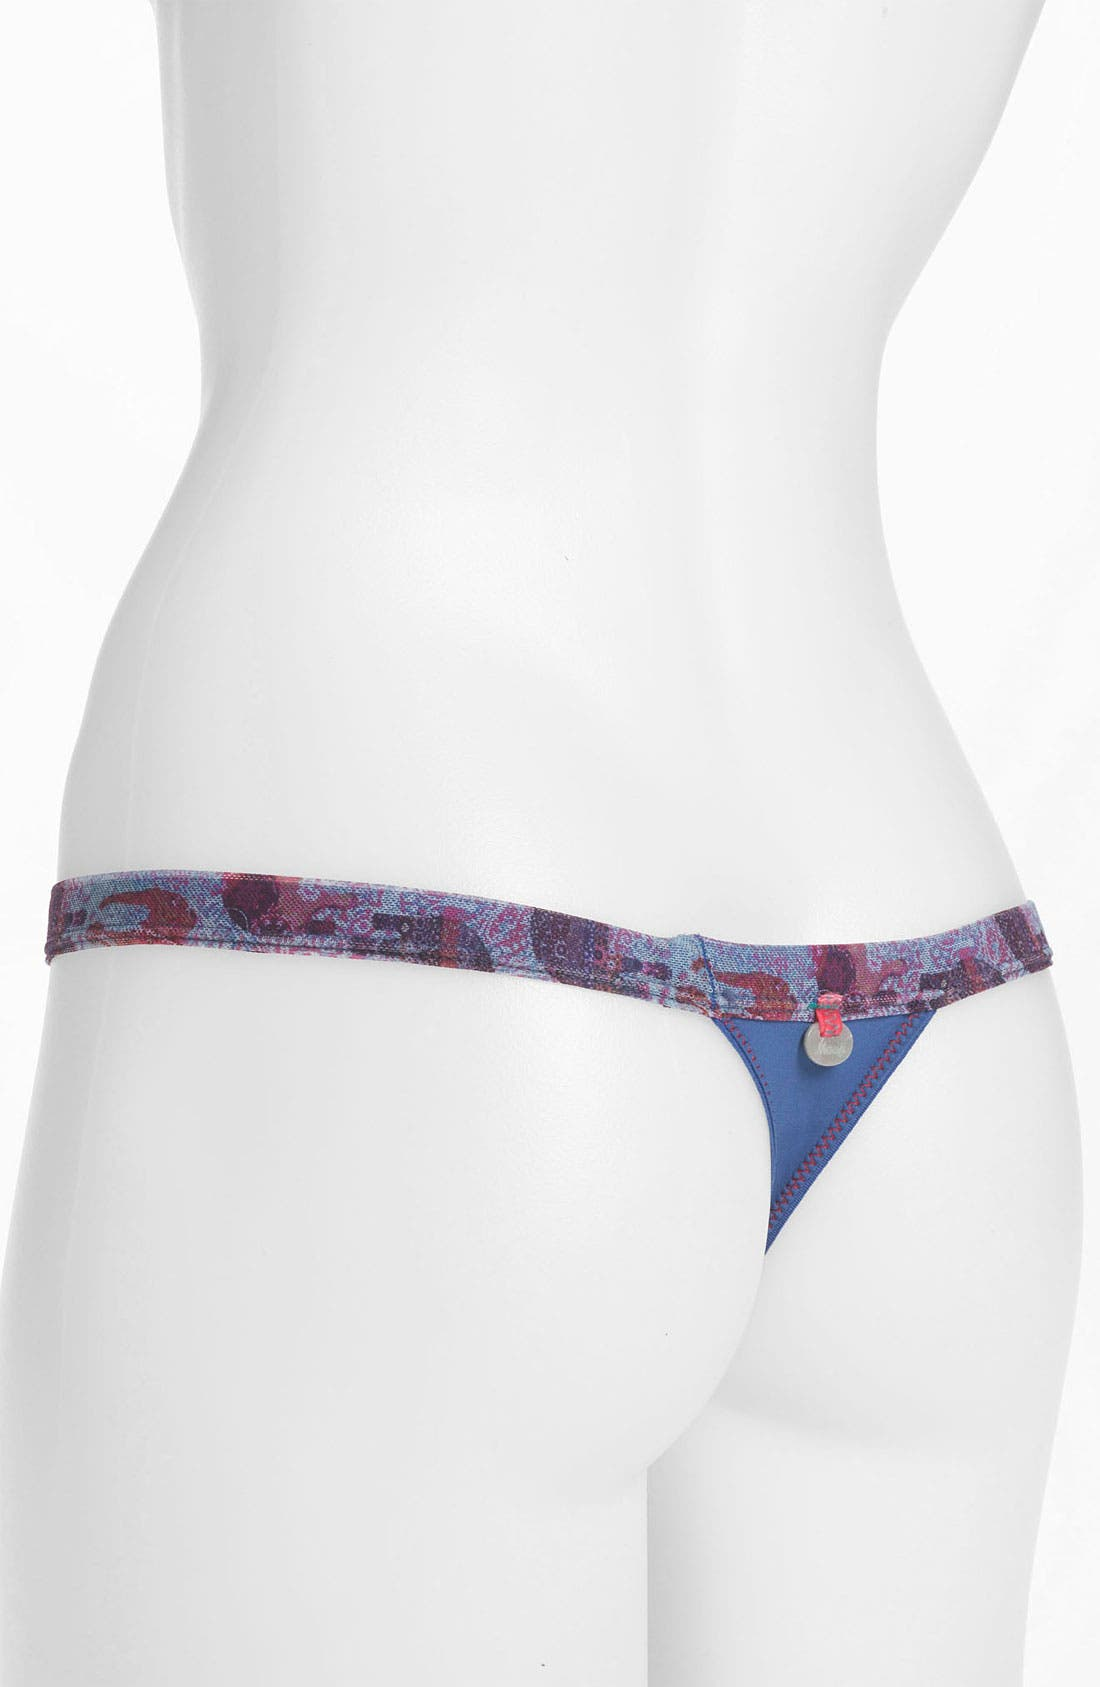 Alternate Image 2  - Maaji 'Find Your Heart' Low Rise Thong